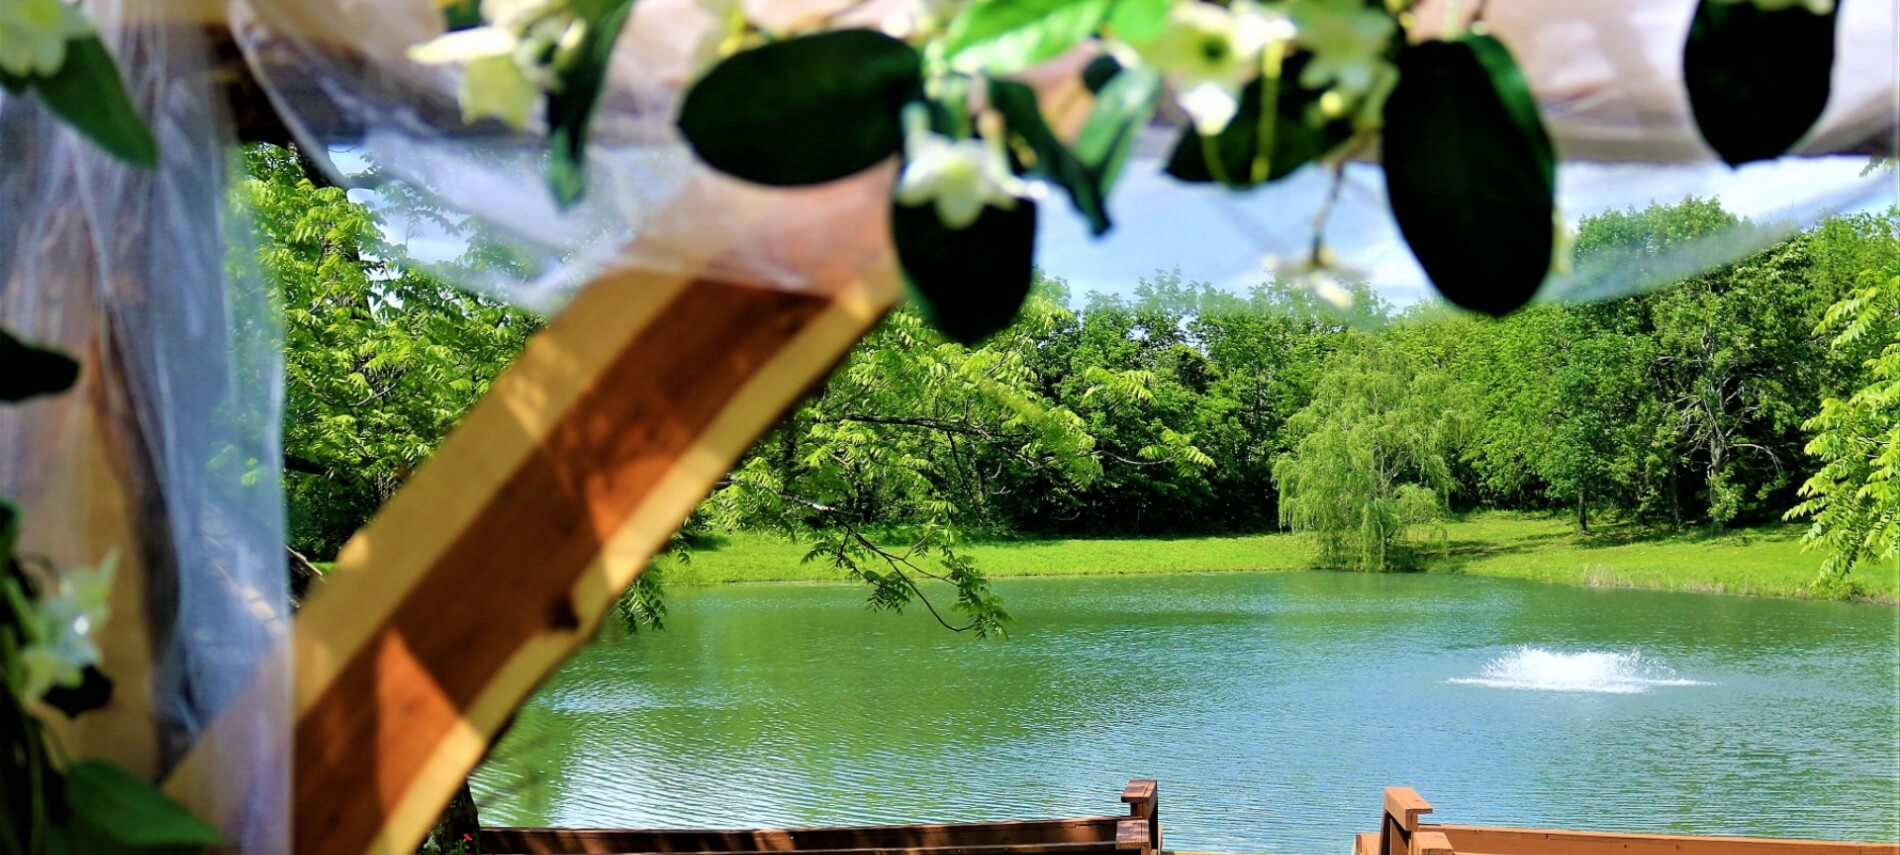 View of pond through woodend wedding arbor with white flowers and greenery